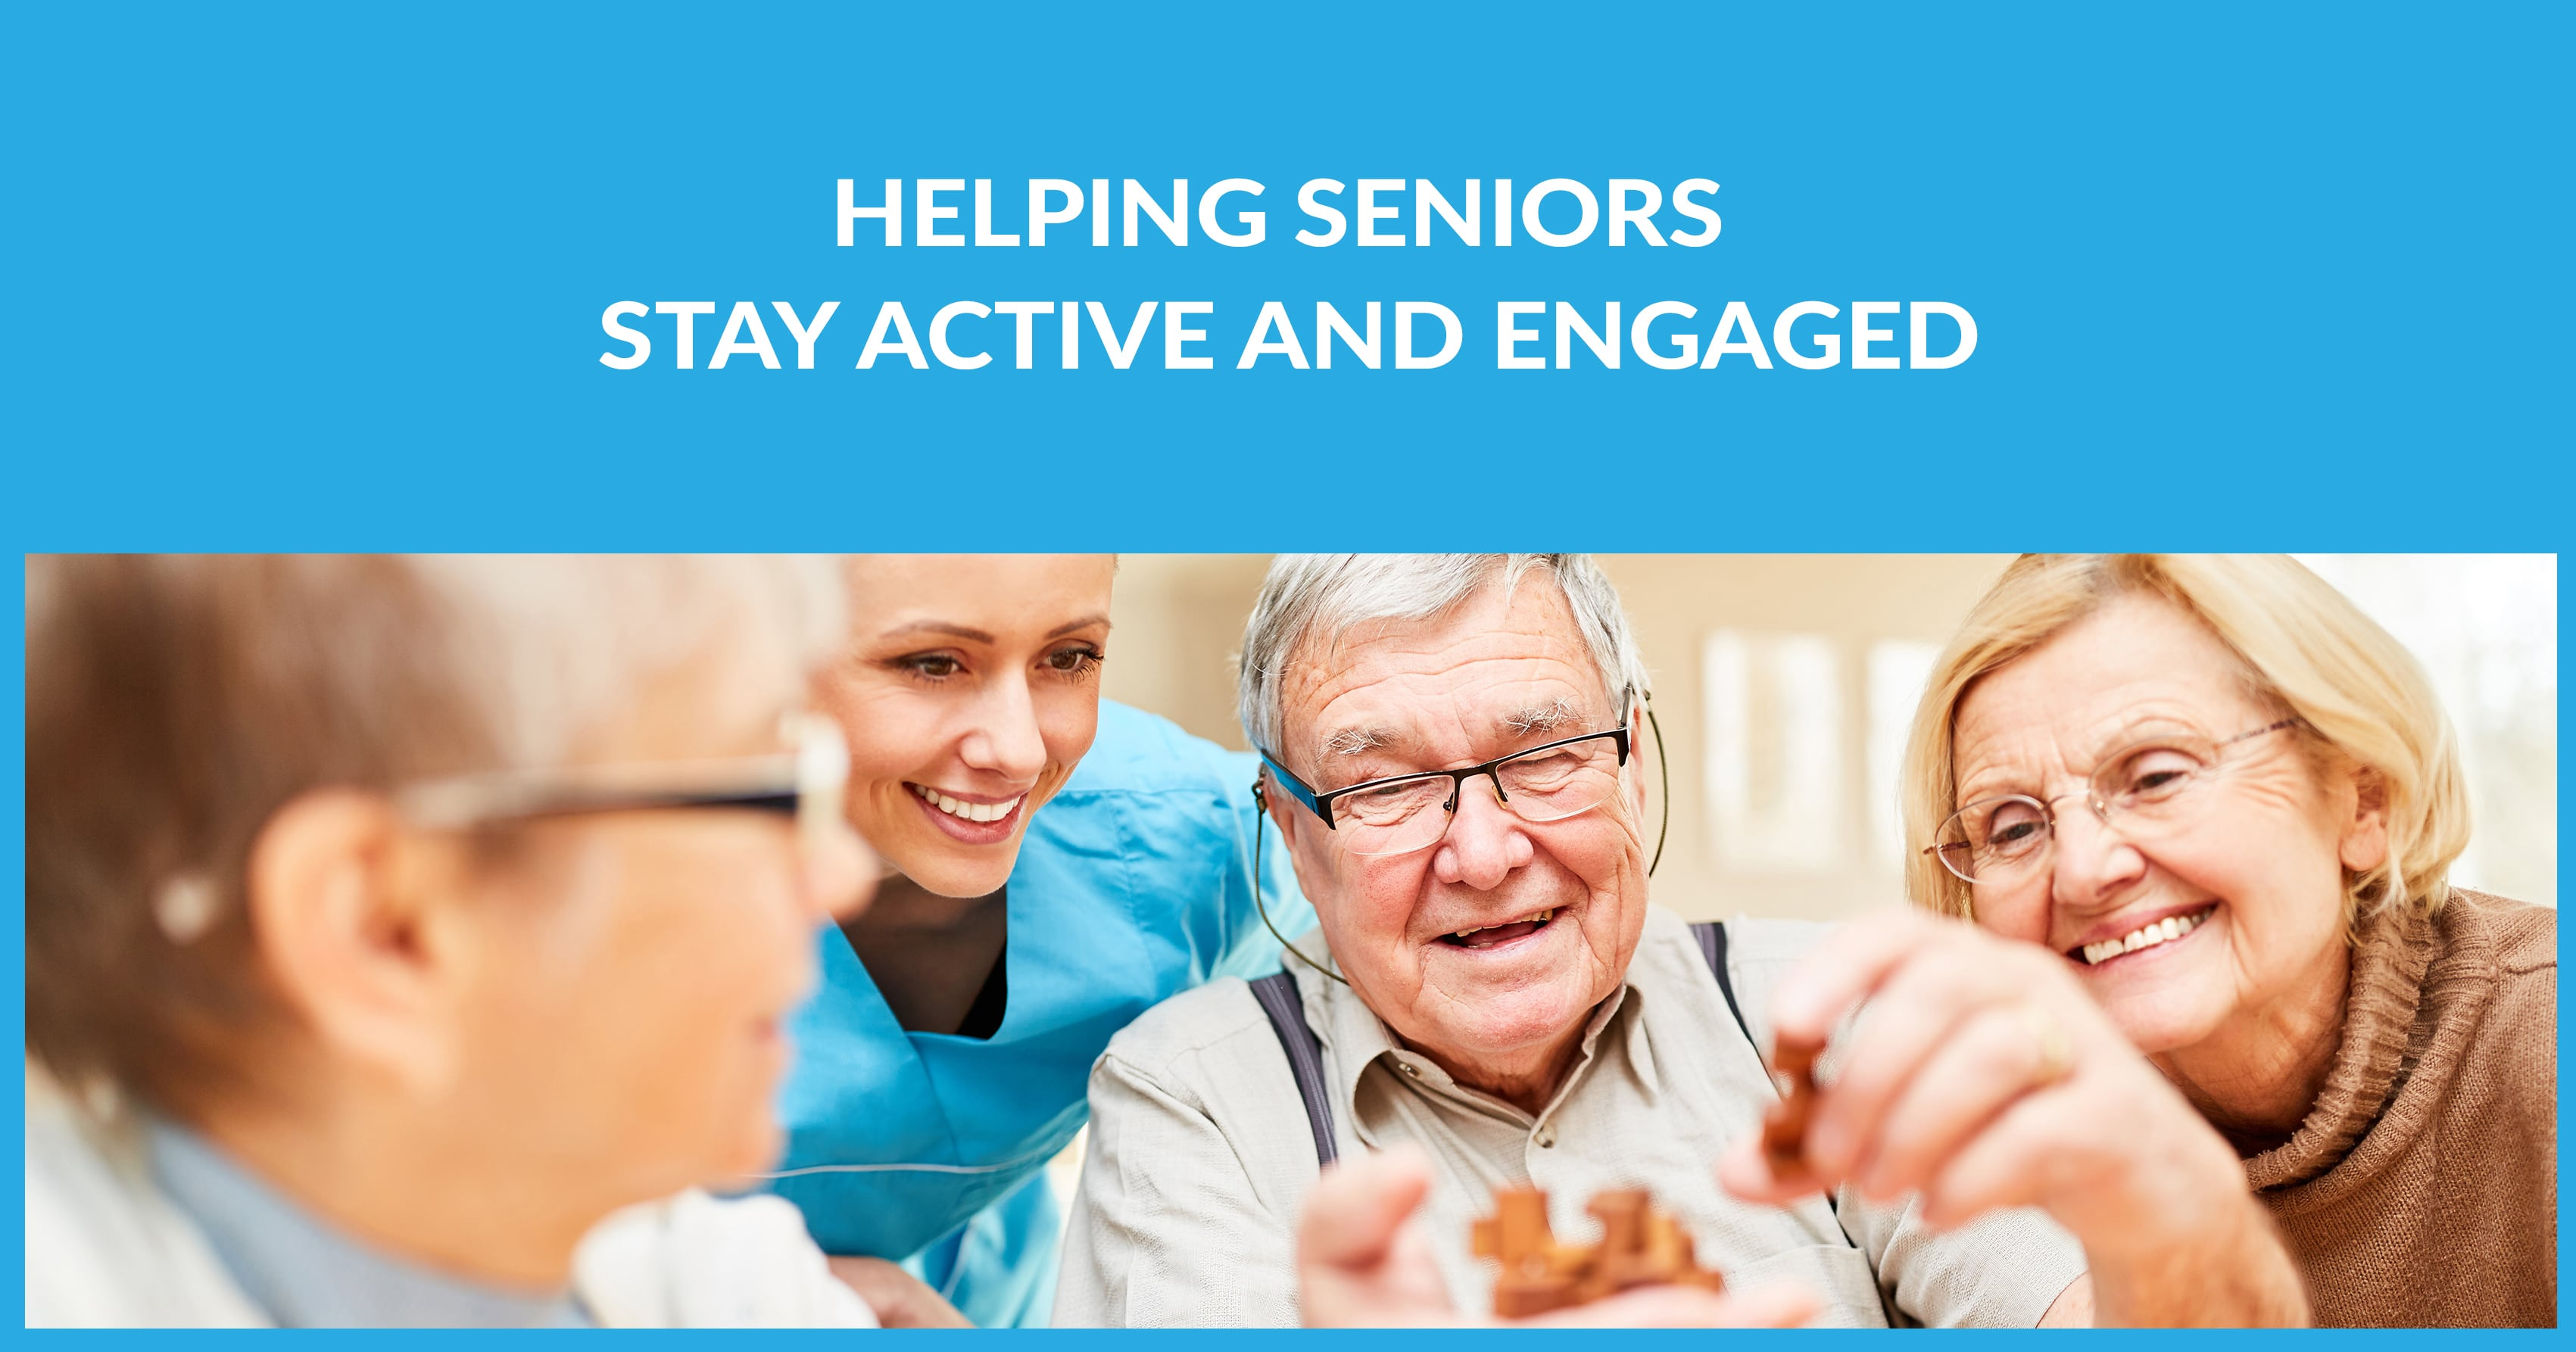 Helping Seniors Stay Active and Engaged